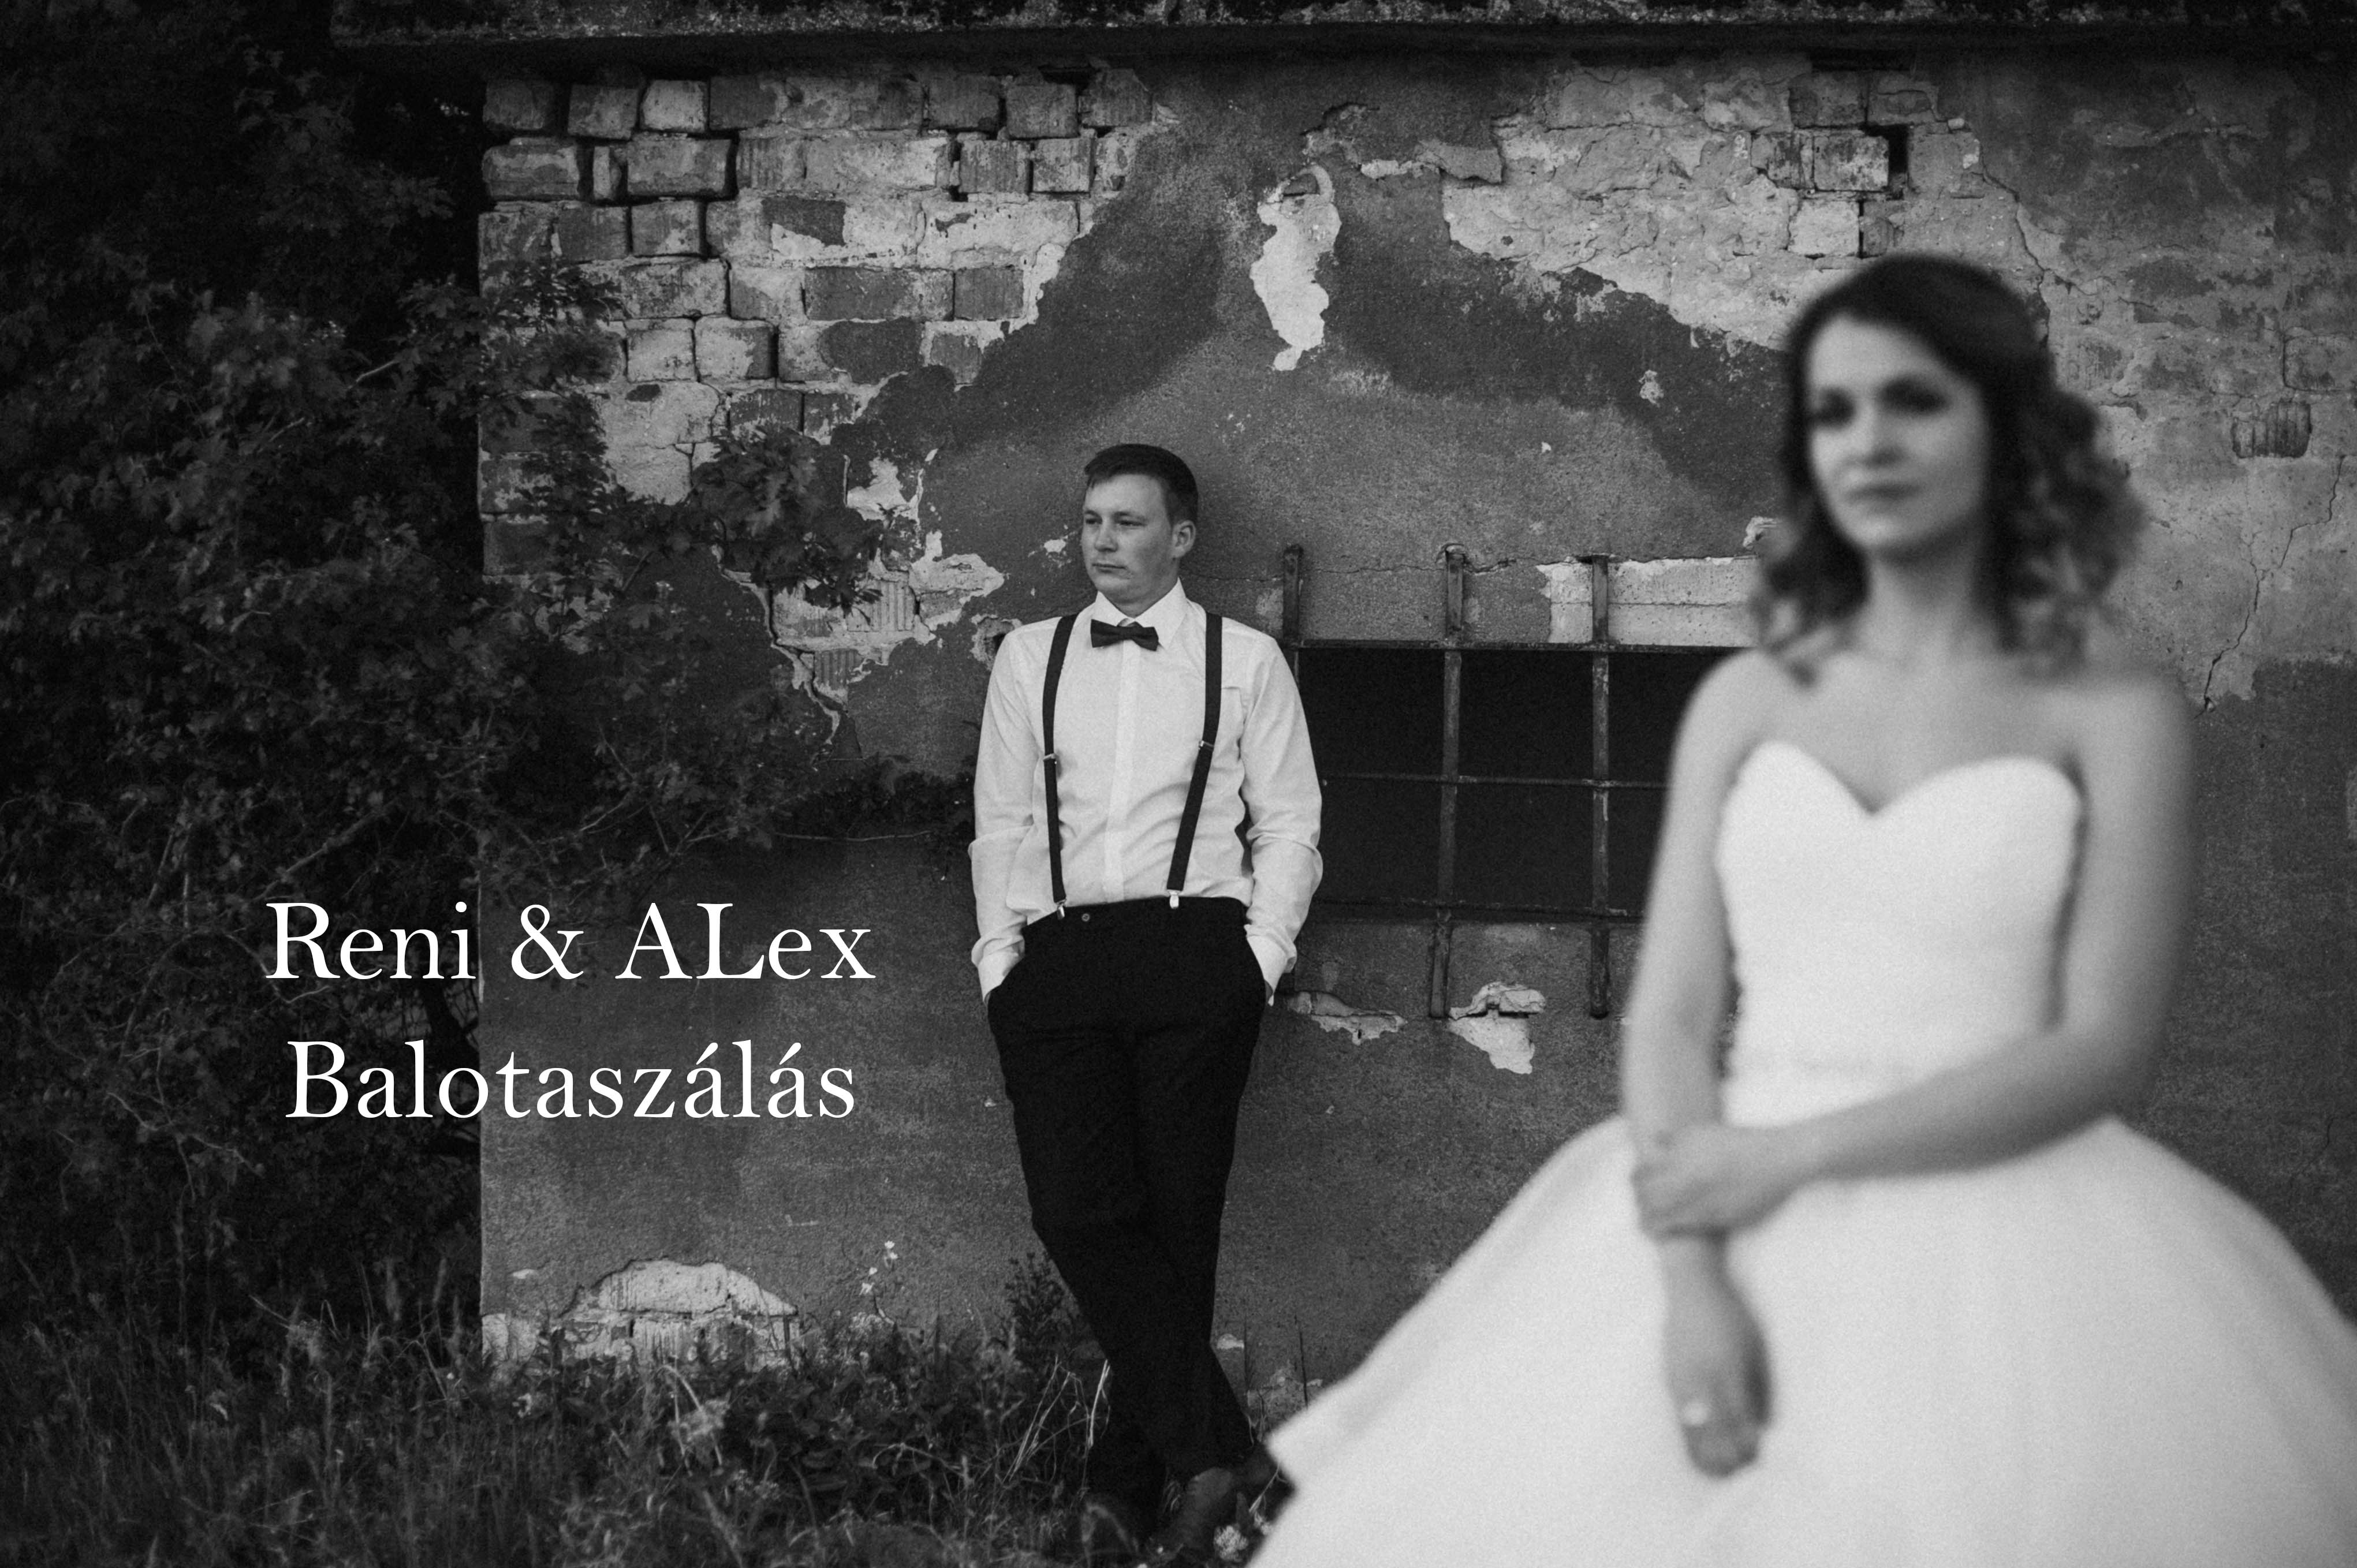 Reni & Alex Wedding day